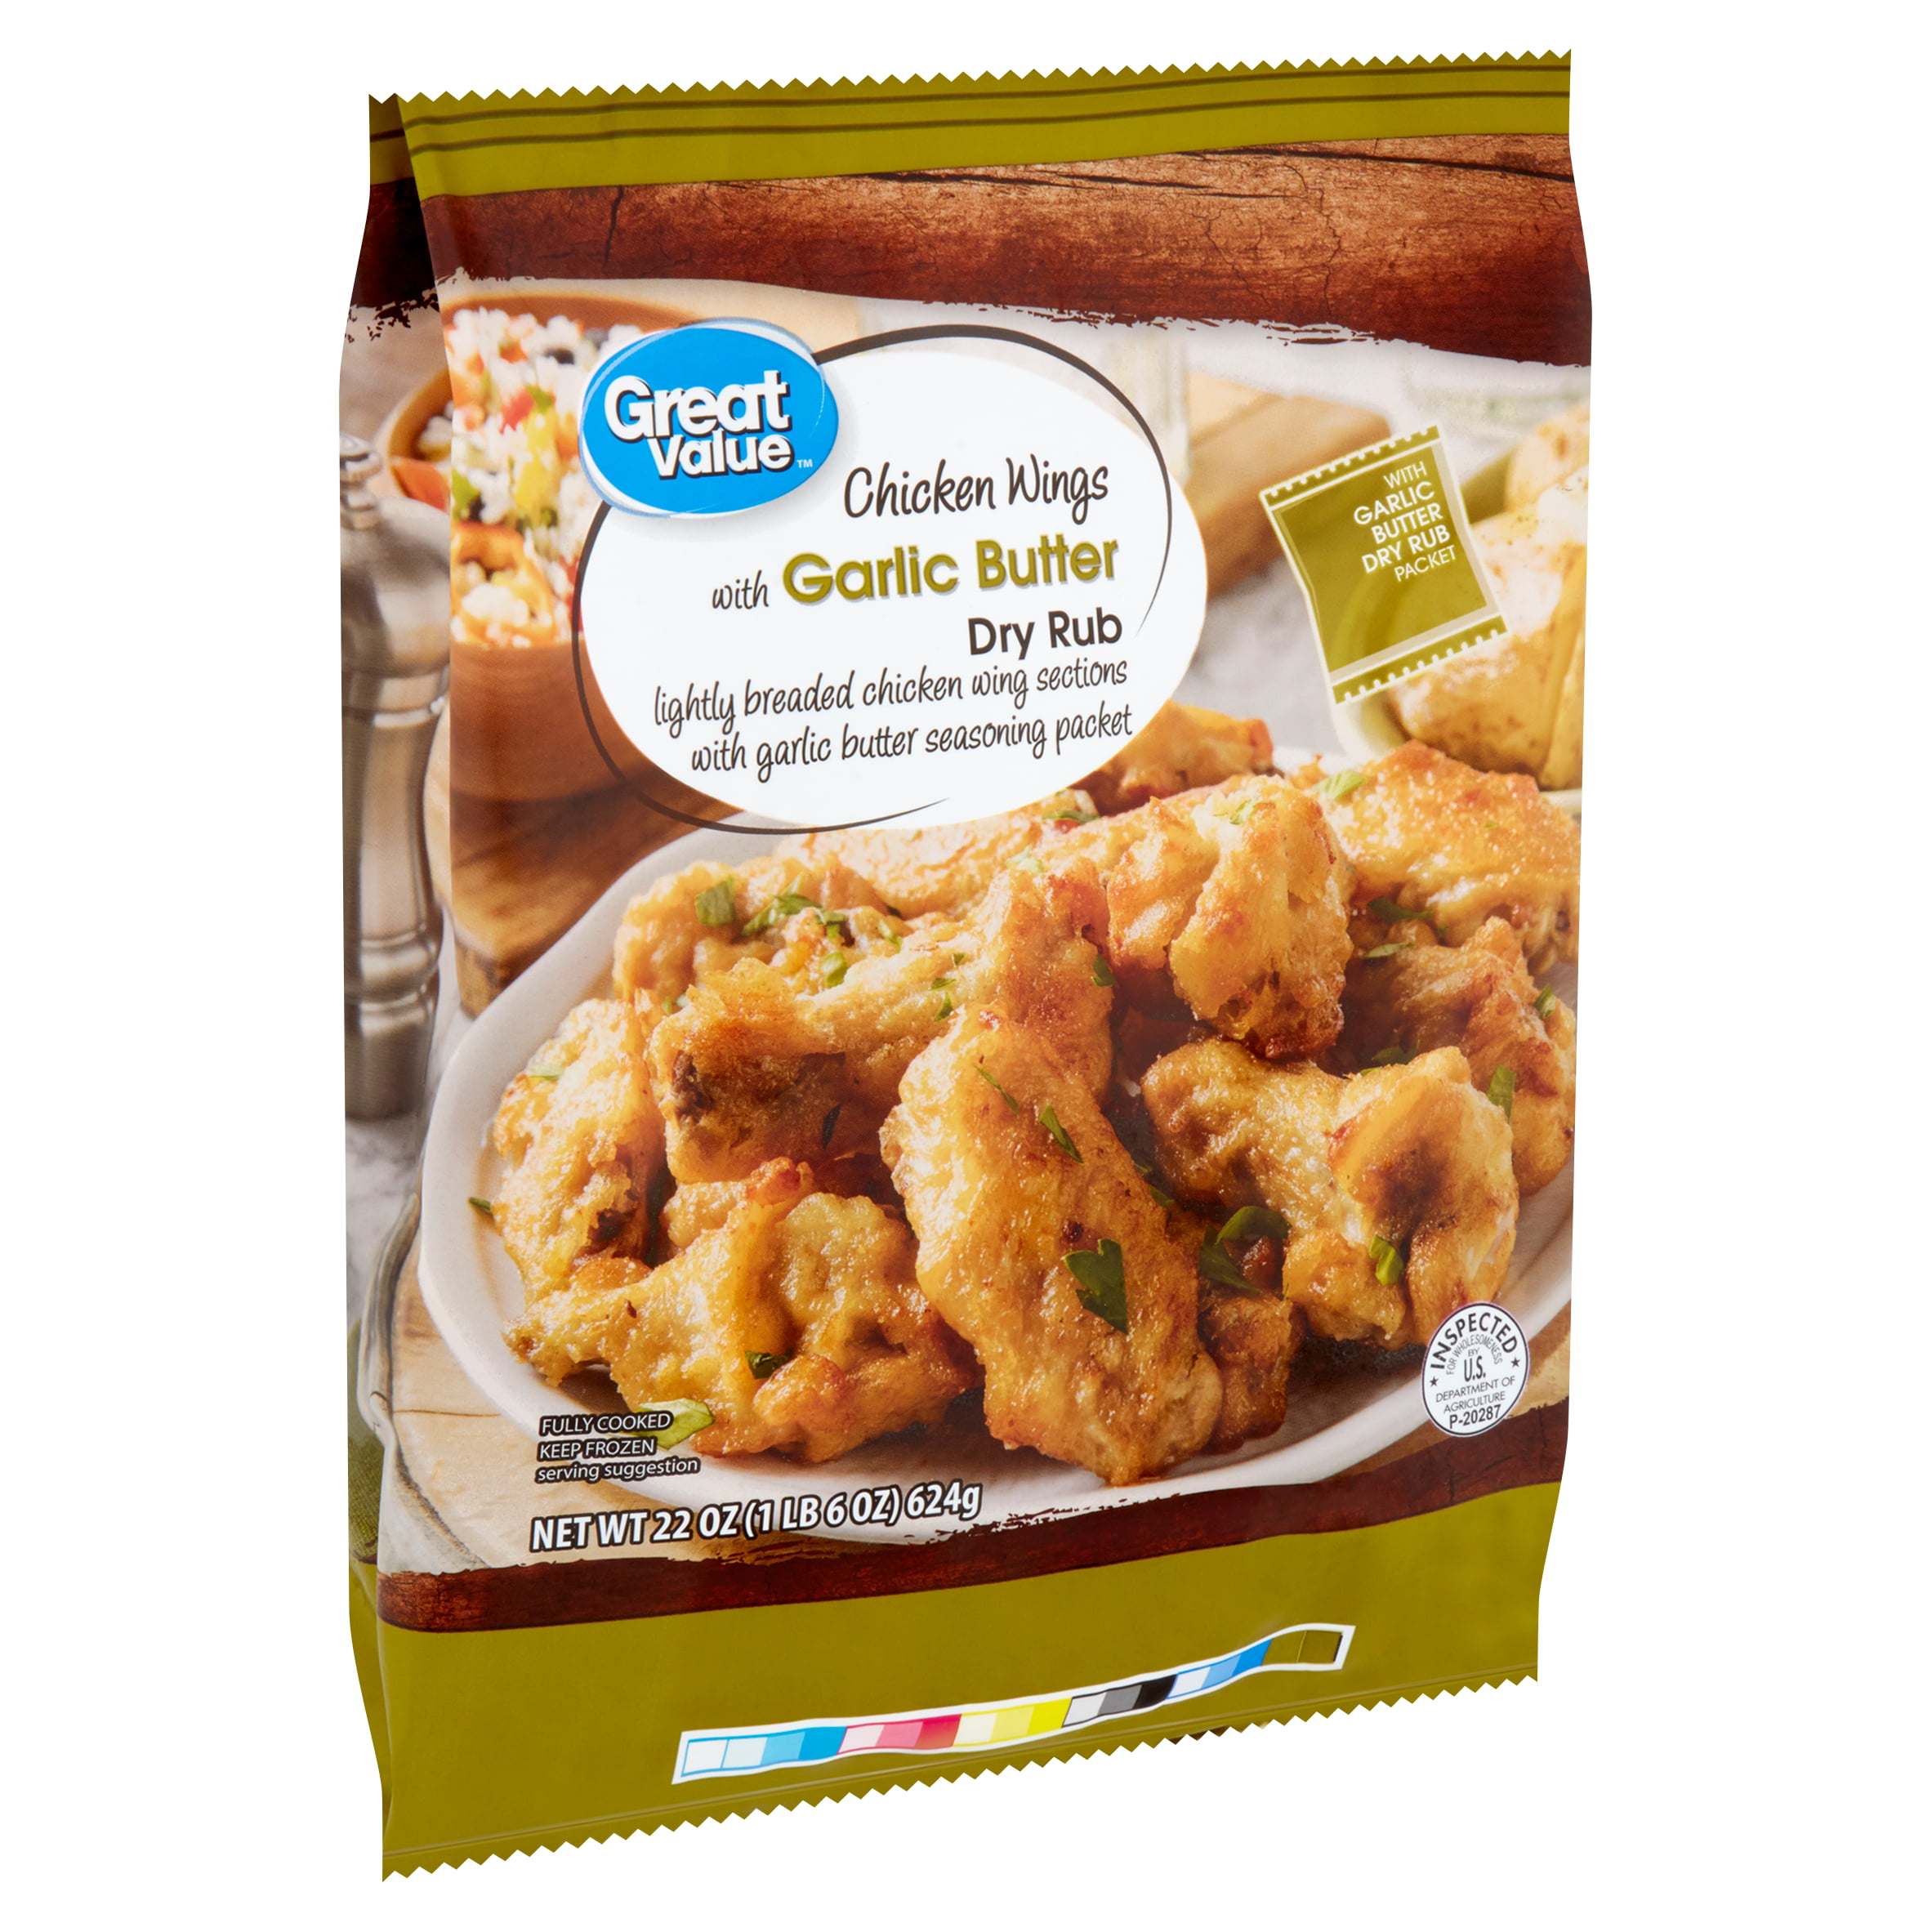 Great Value Chicken Wings With Garlic Butter Dry Rub 22 Oz